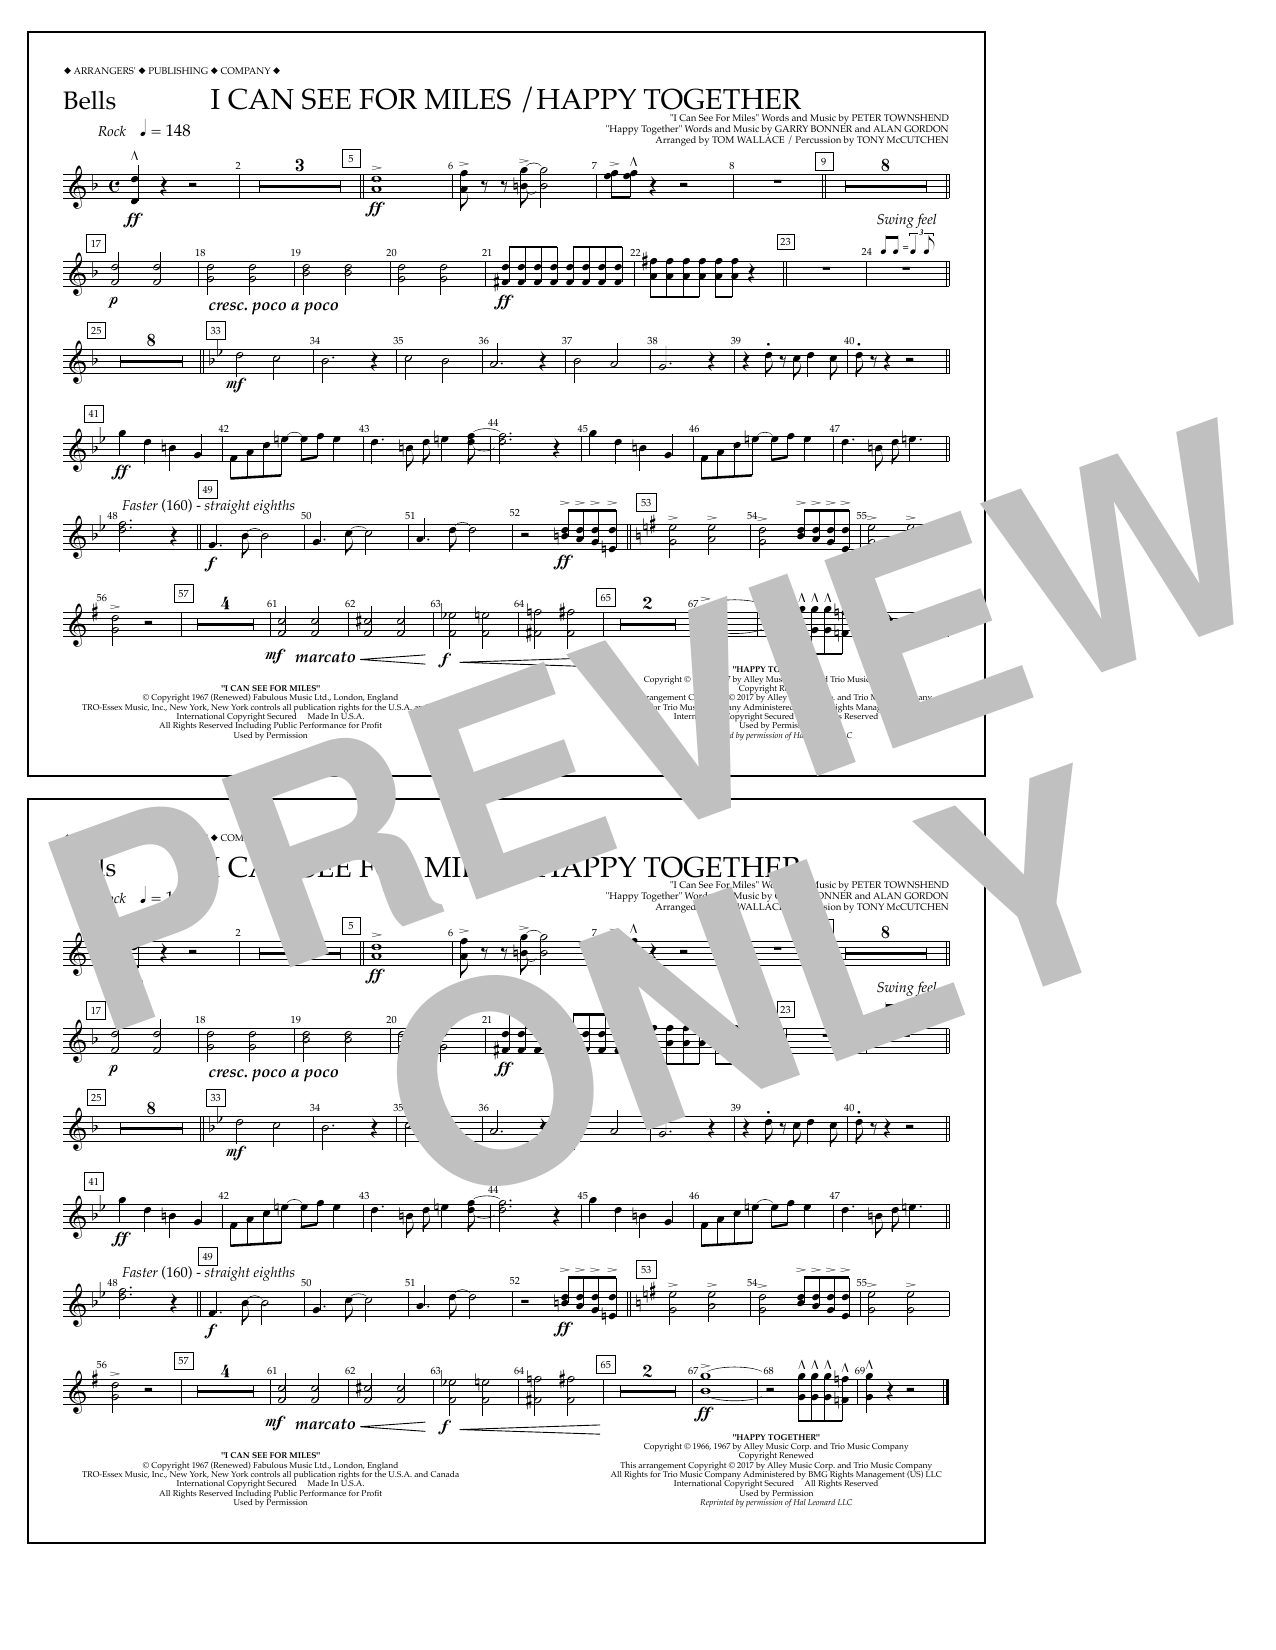 I Can See for Miles/Happy Together - Bells Sheet Music